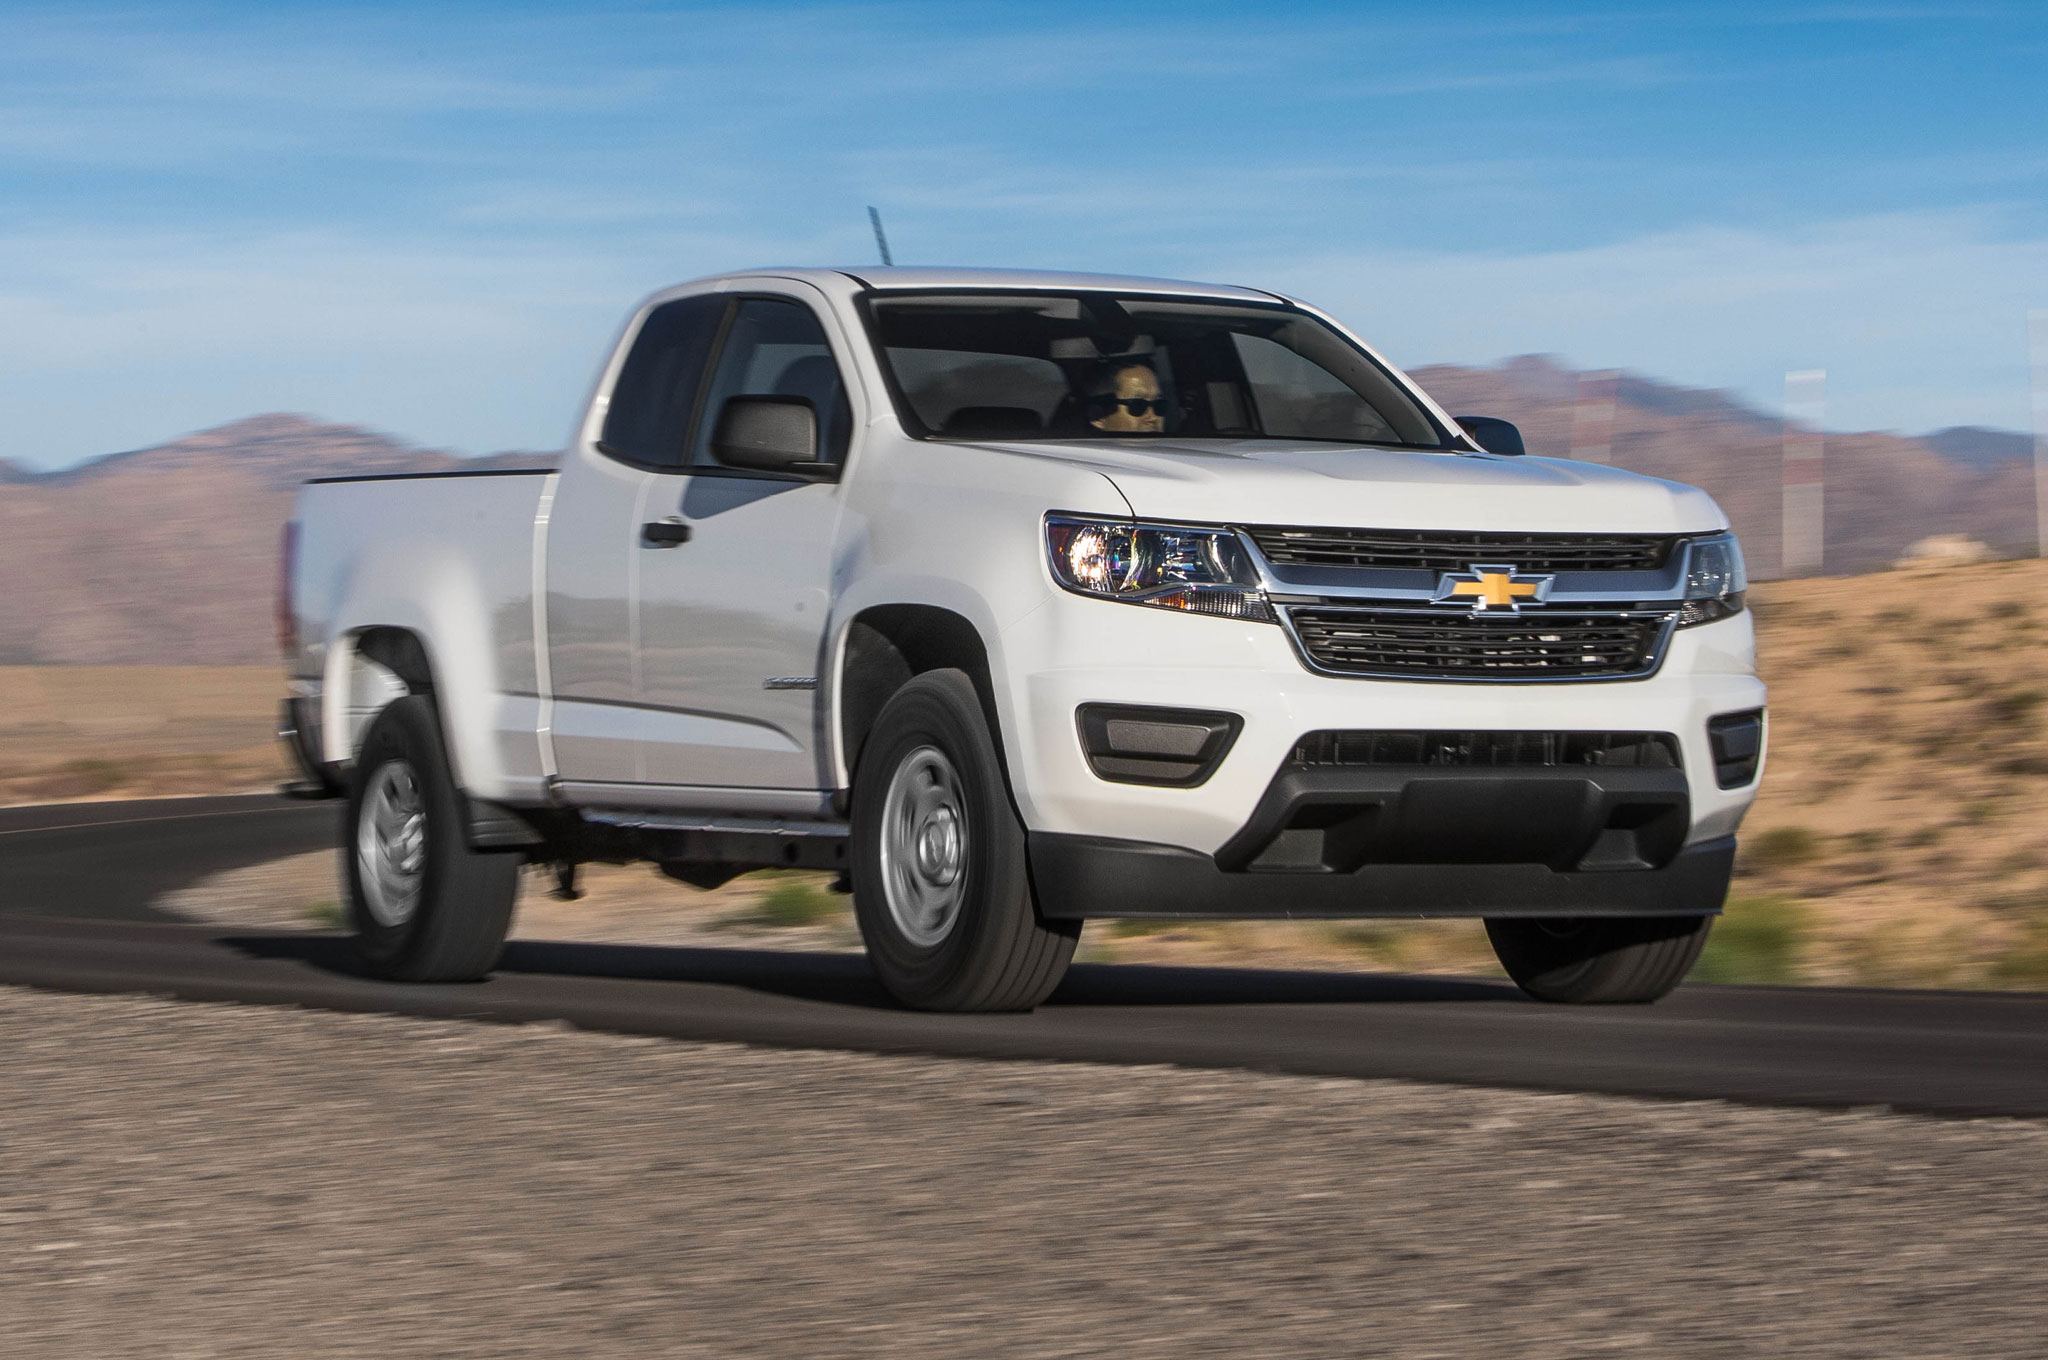 2015 Chevrolet Colorado Work Truck Review